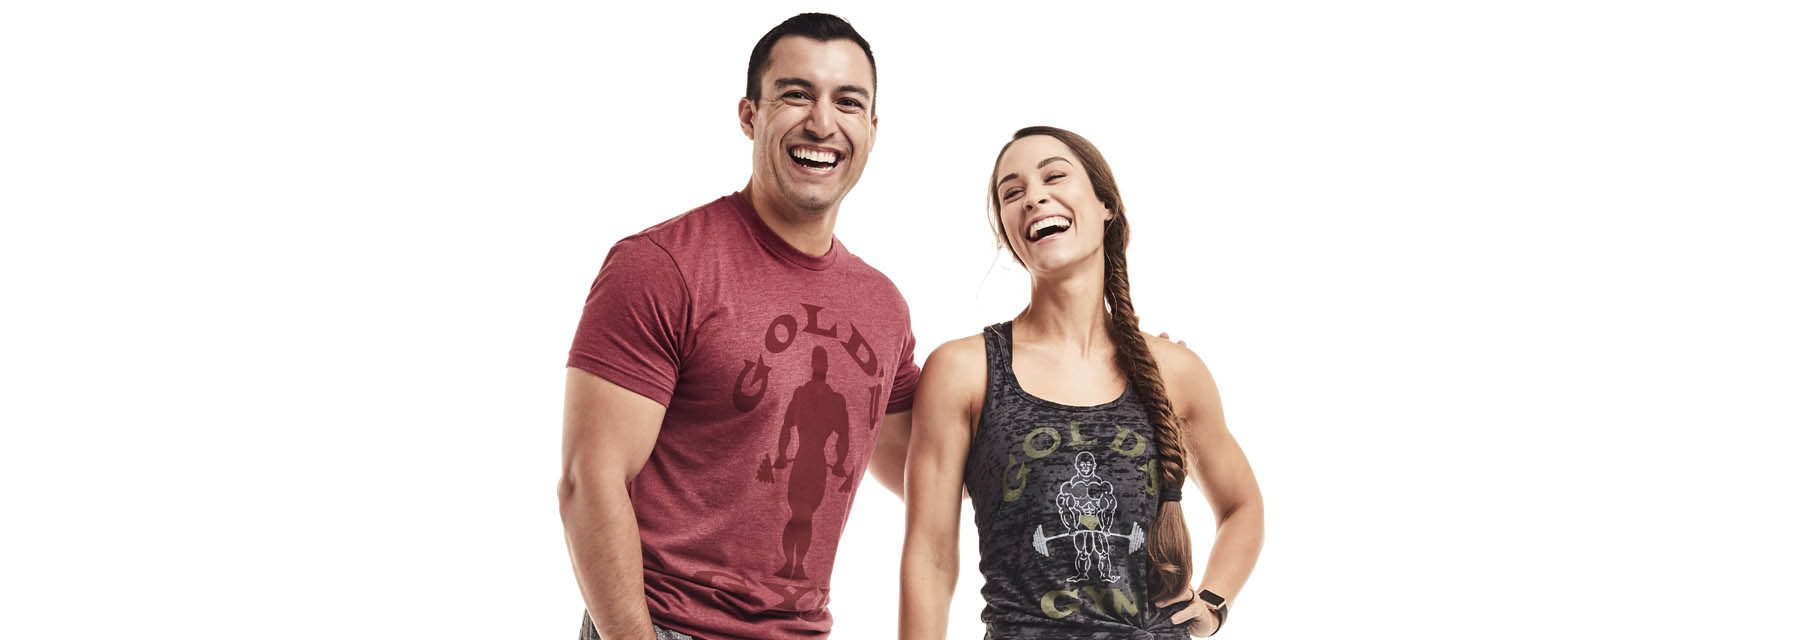 Golds Gym is a gym franchise with locations throughout the United States. There does not appear to be a corporate website, but corporate information is available .